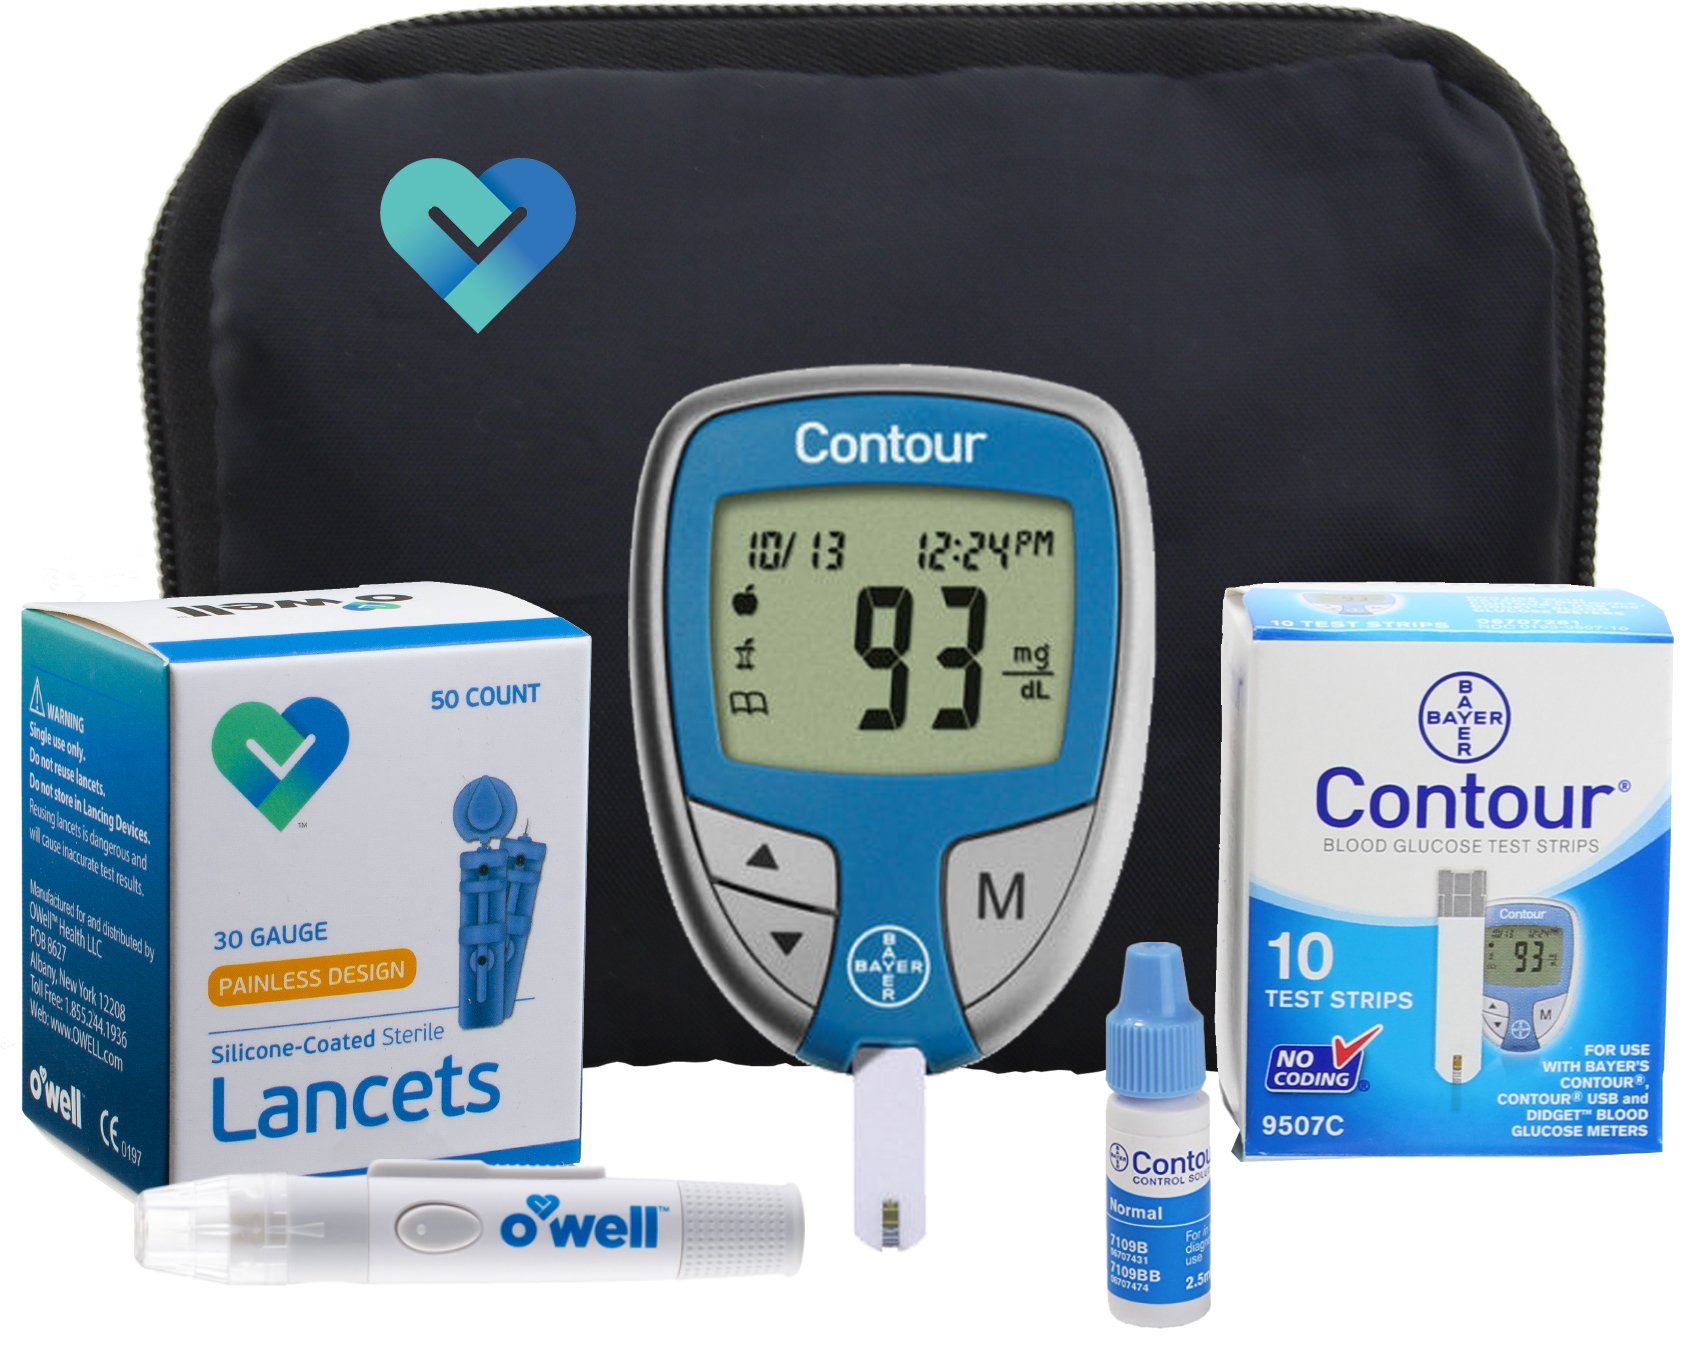 Contour Diabetes Blood Glucose Testing Kit - Contour Meter, 10 Test Strips, 50 OWell Lancets, OWell Lancing Device, Control Solution, Manual, Log Book & Carry Case